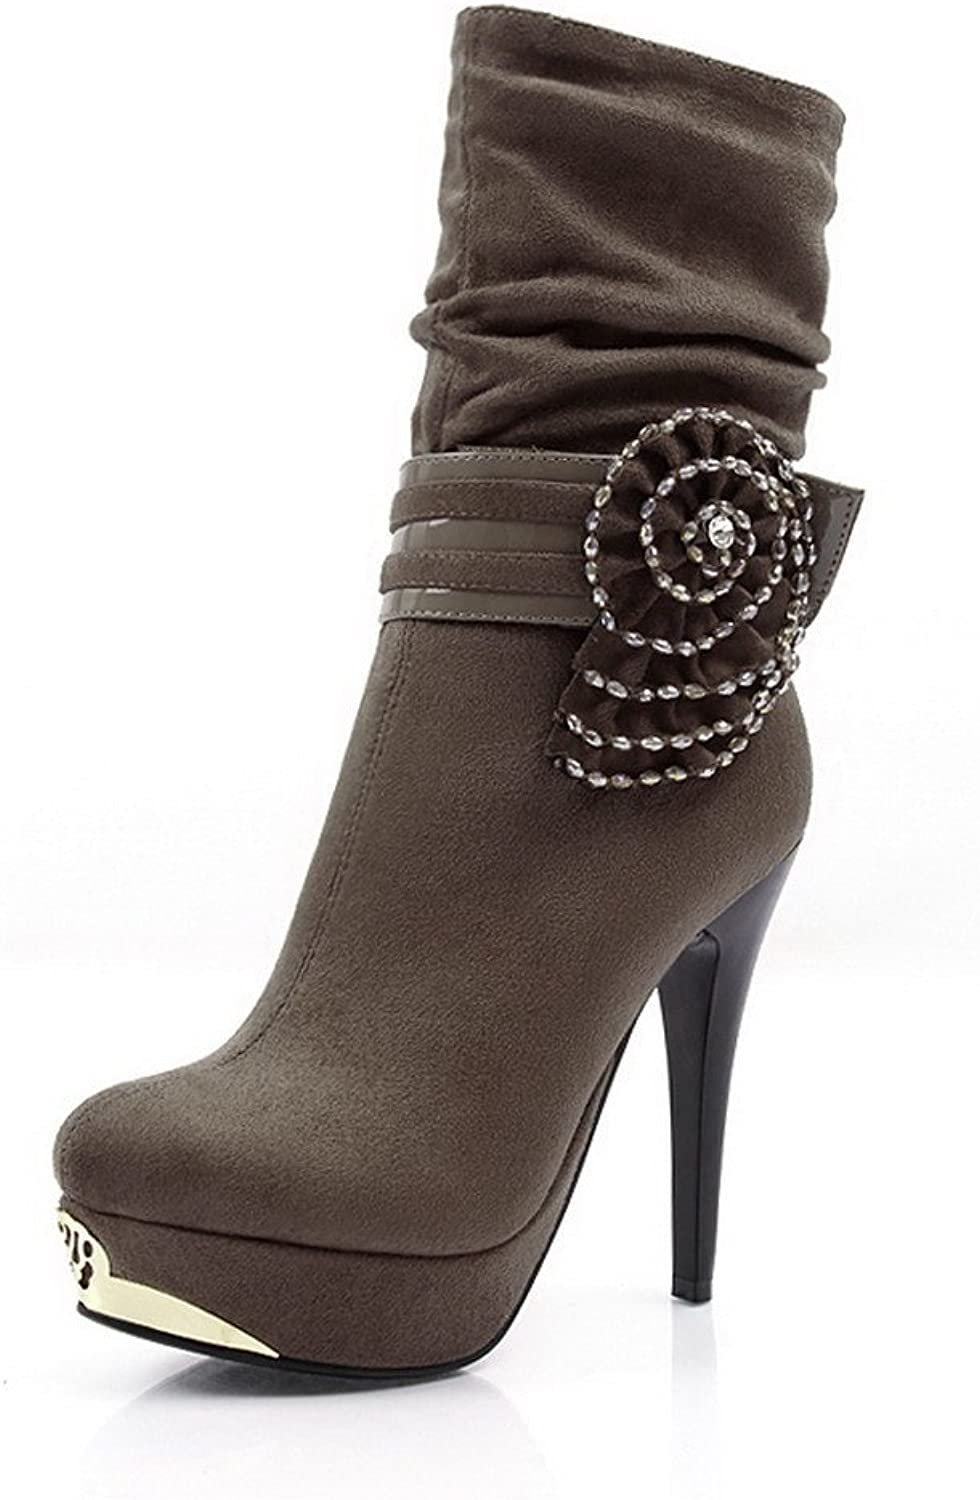 QueenFashion Women's Steel Toe Stiletto Ankle Boots with Bead and Flowers